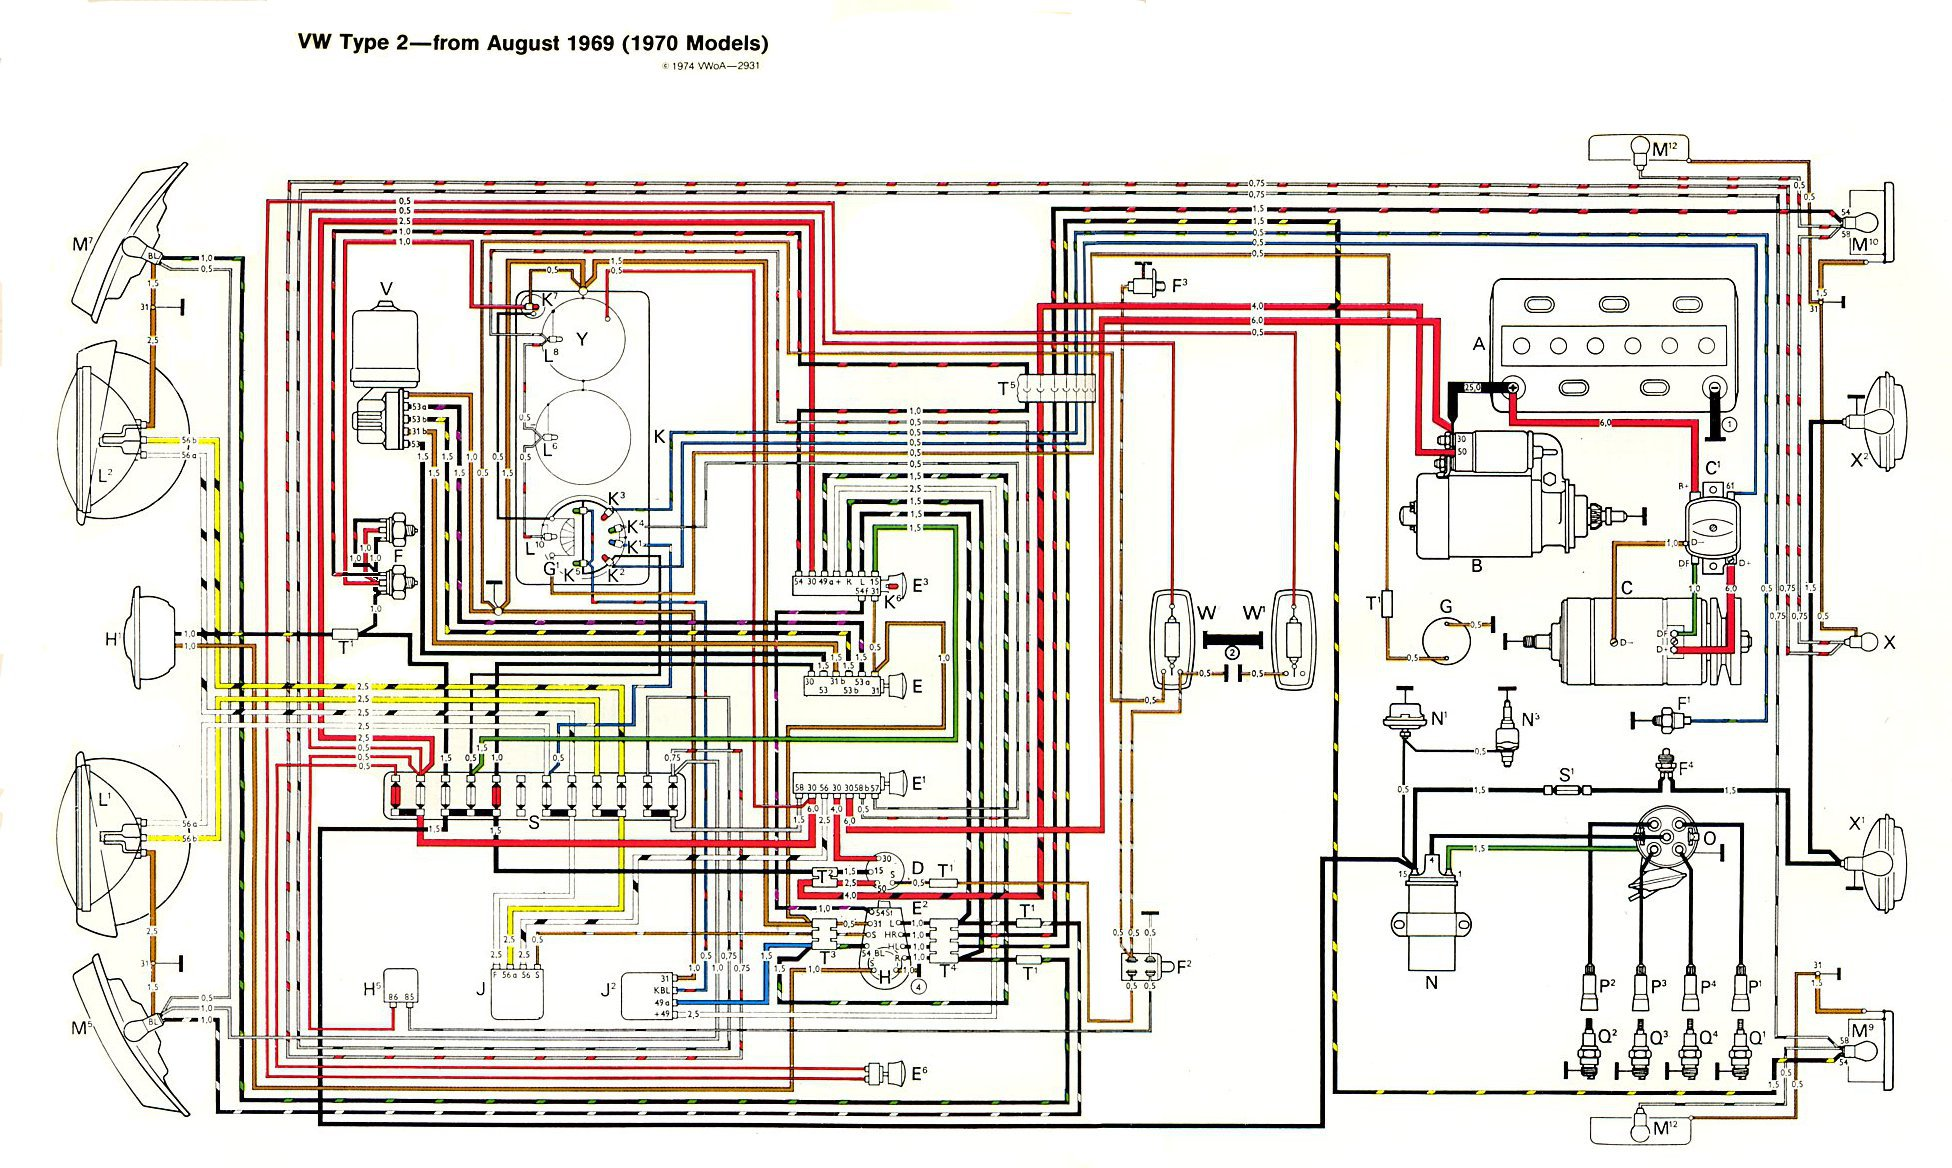 type 2 vw engine diagram thesamba com type 2 wiring diagrams 1970 brake highlight volkswagen